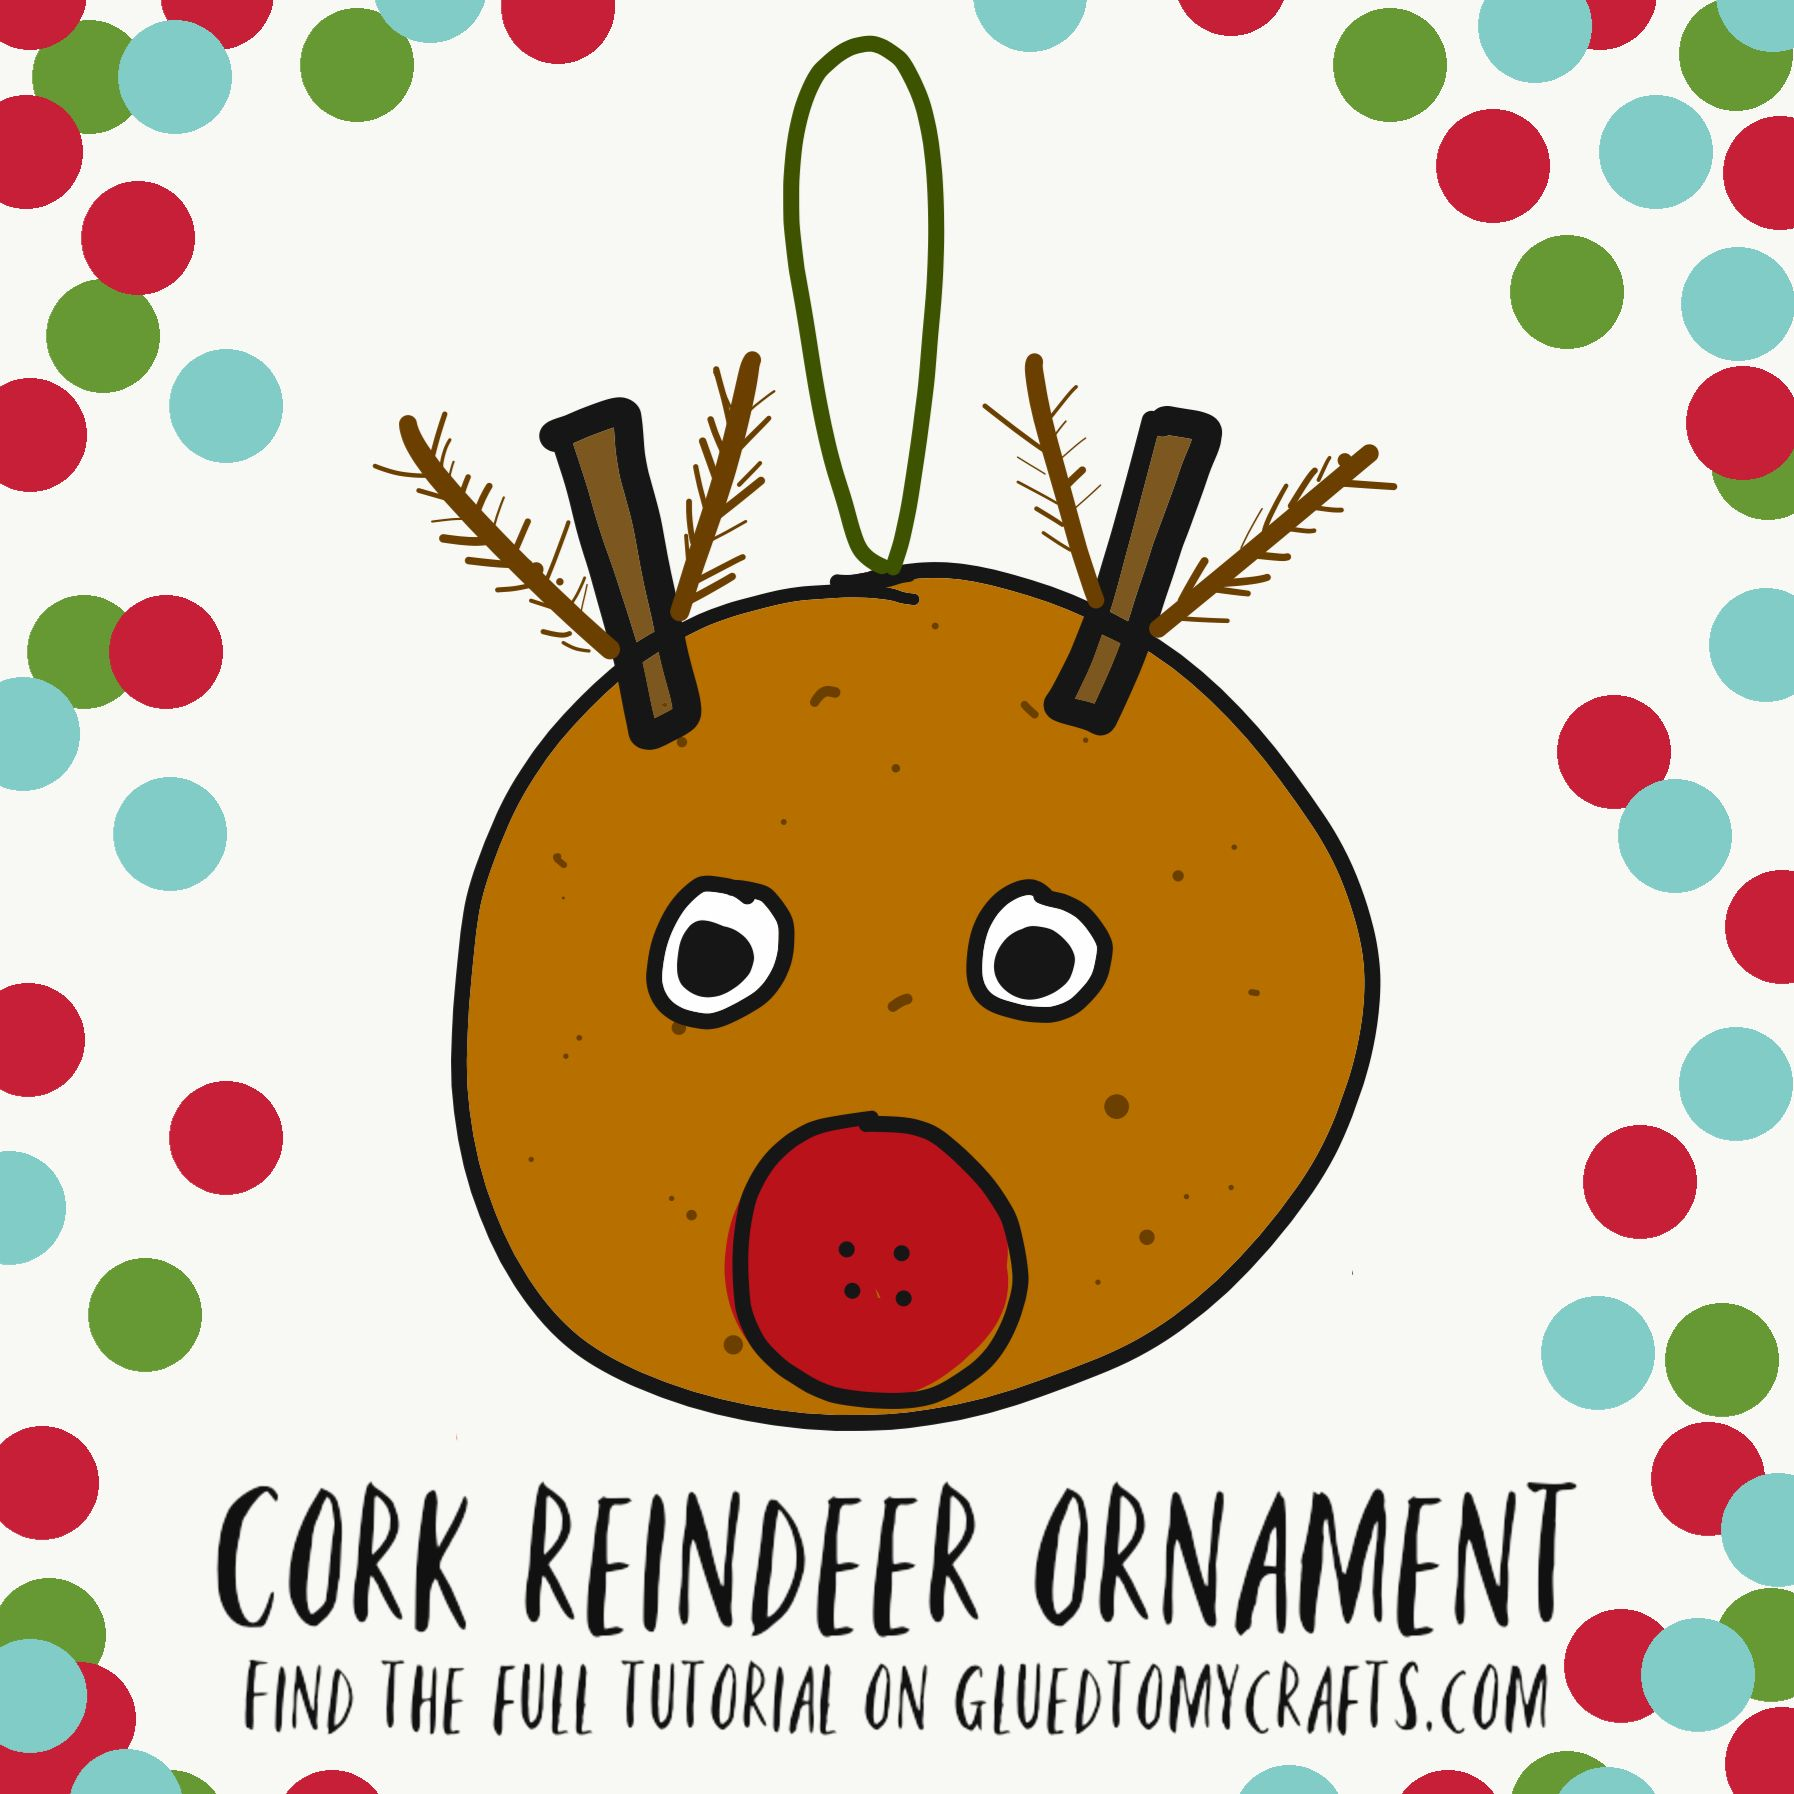 Diy Cork Reindeer Ornaments To Make For The Christmas Tree